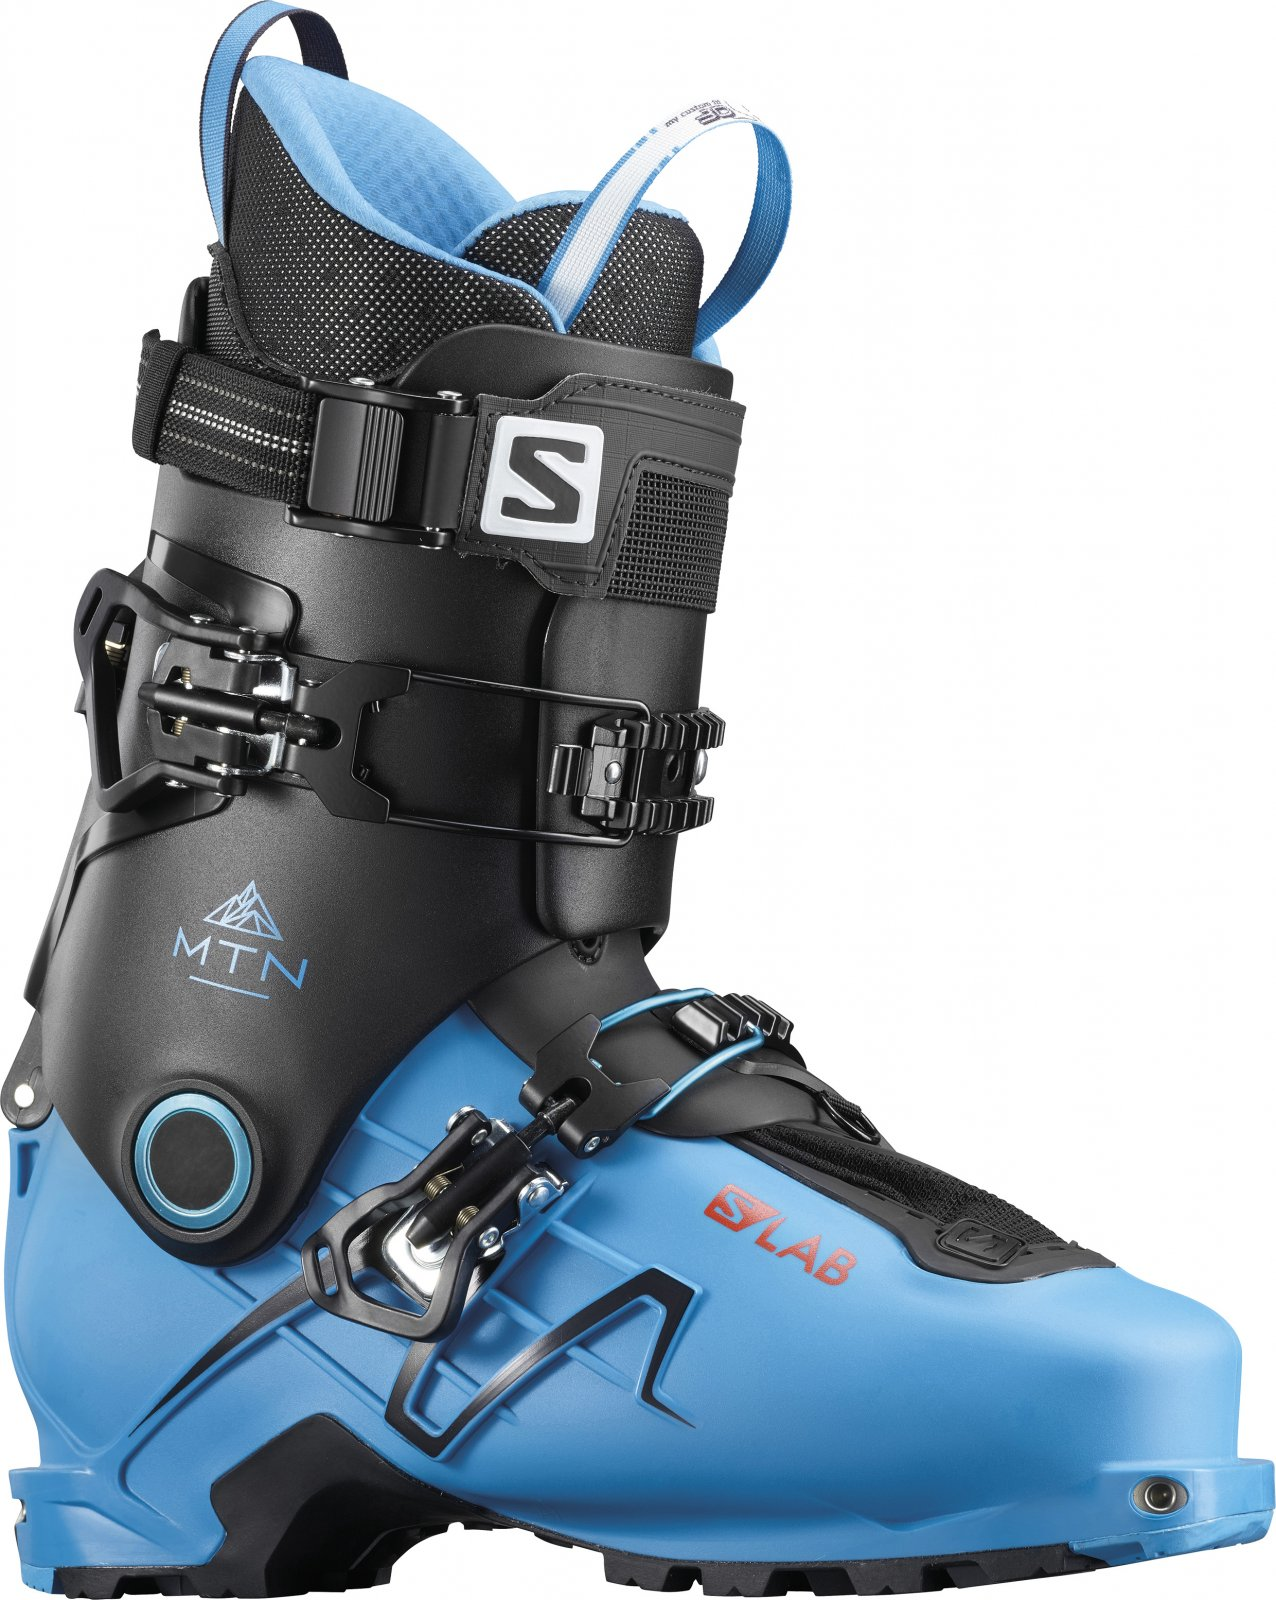 Salomon 2018 S/Lab MTN